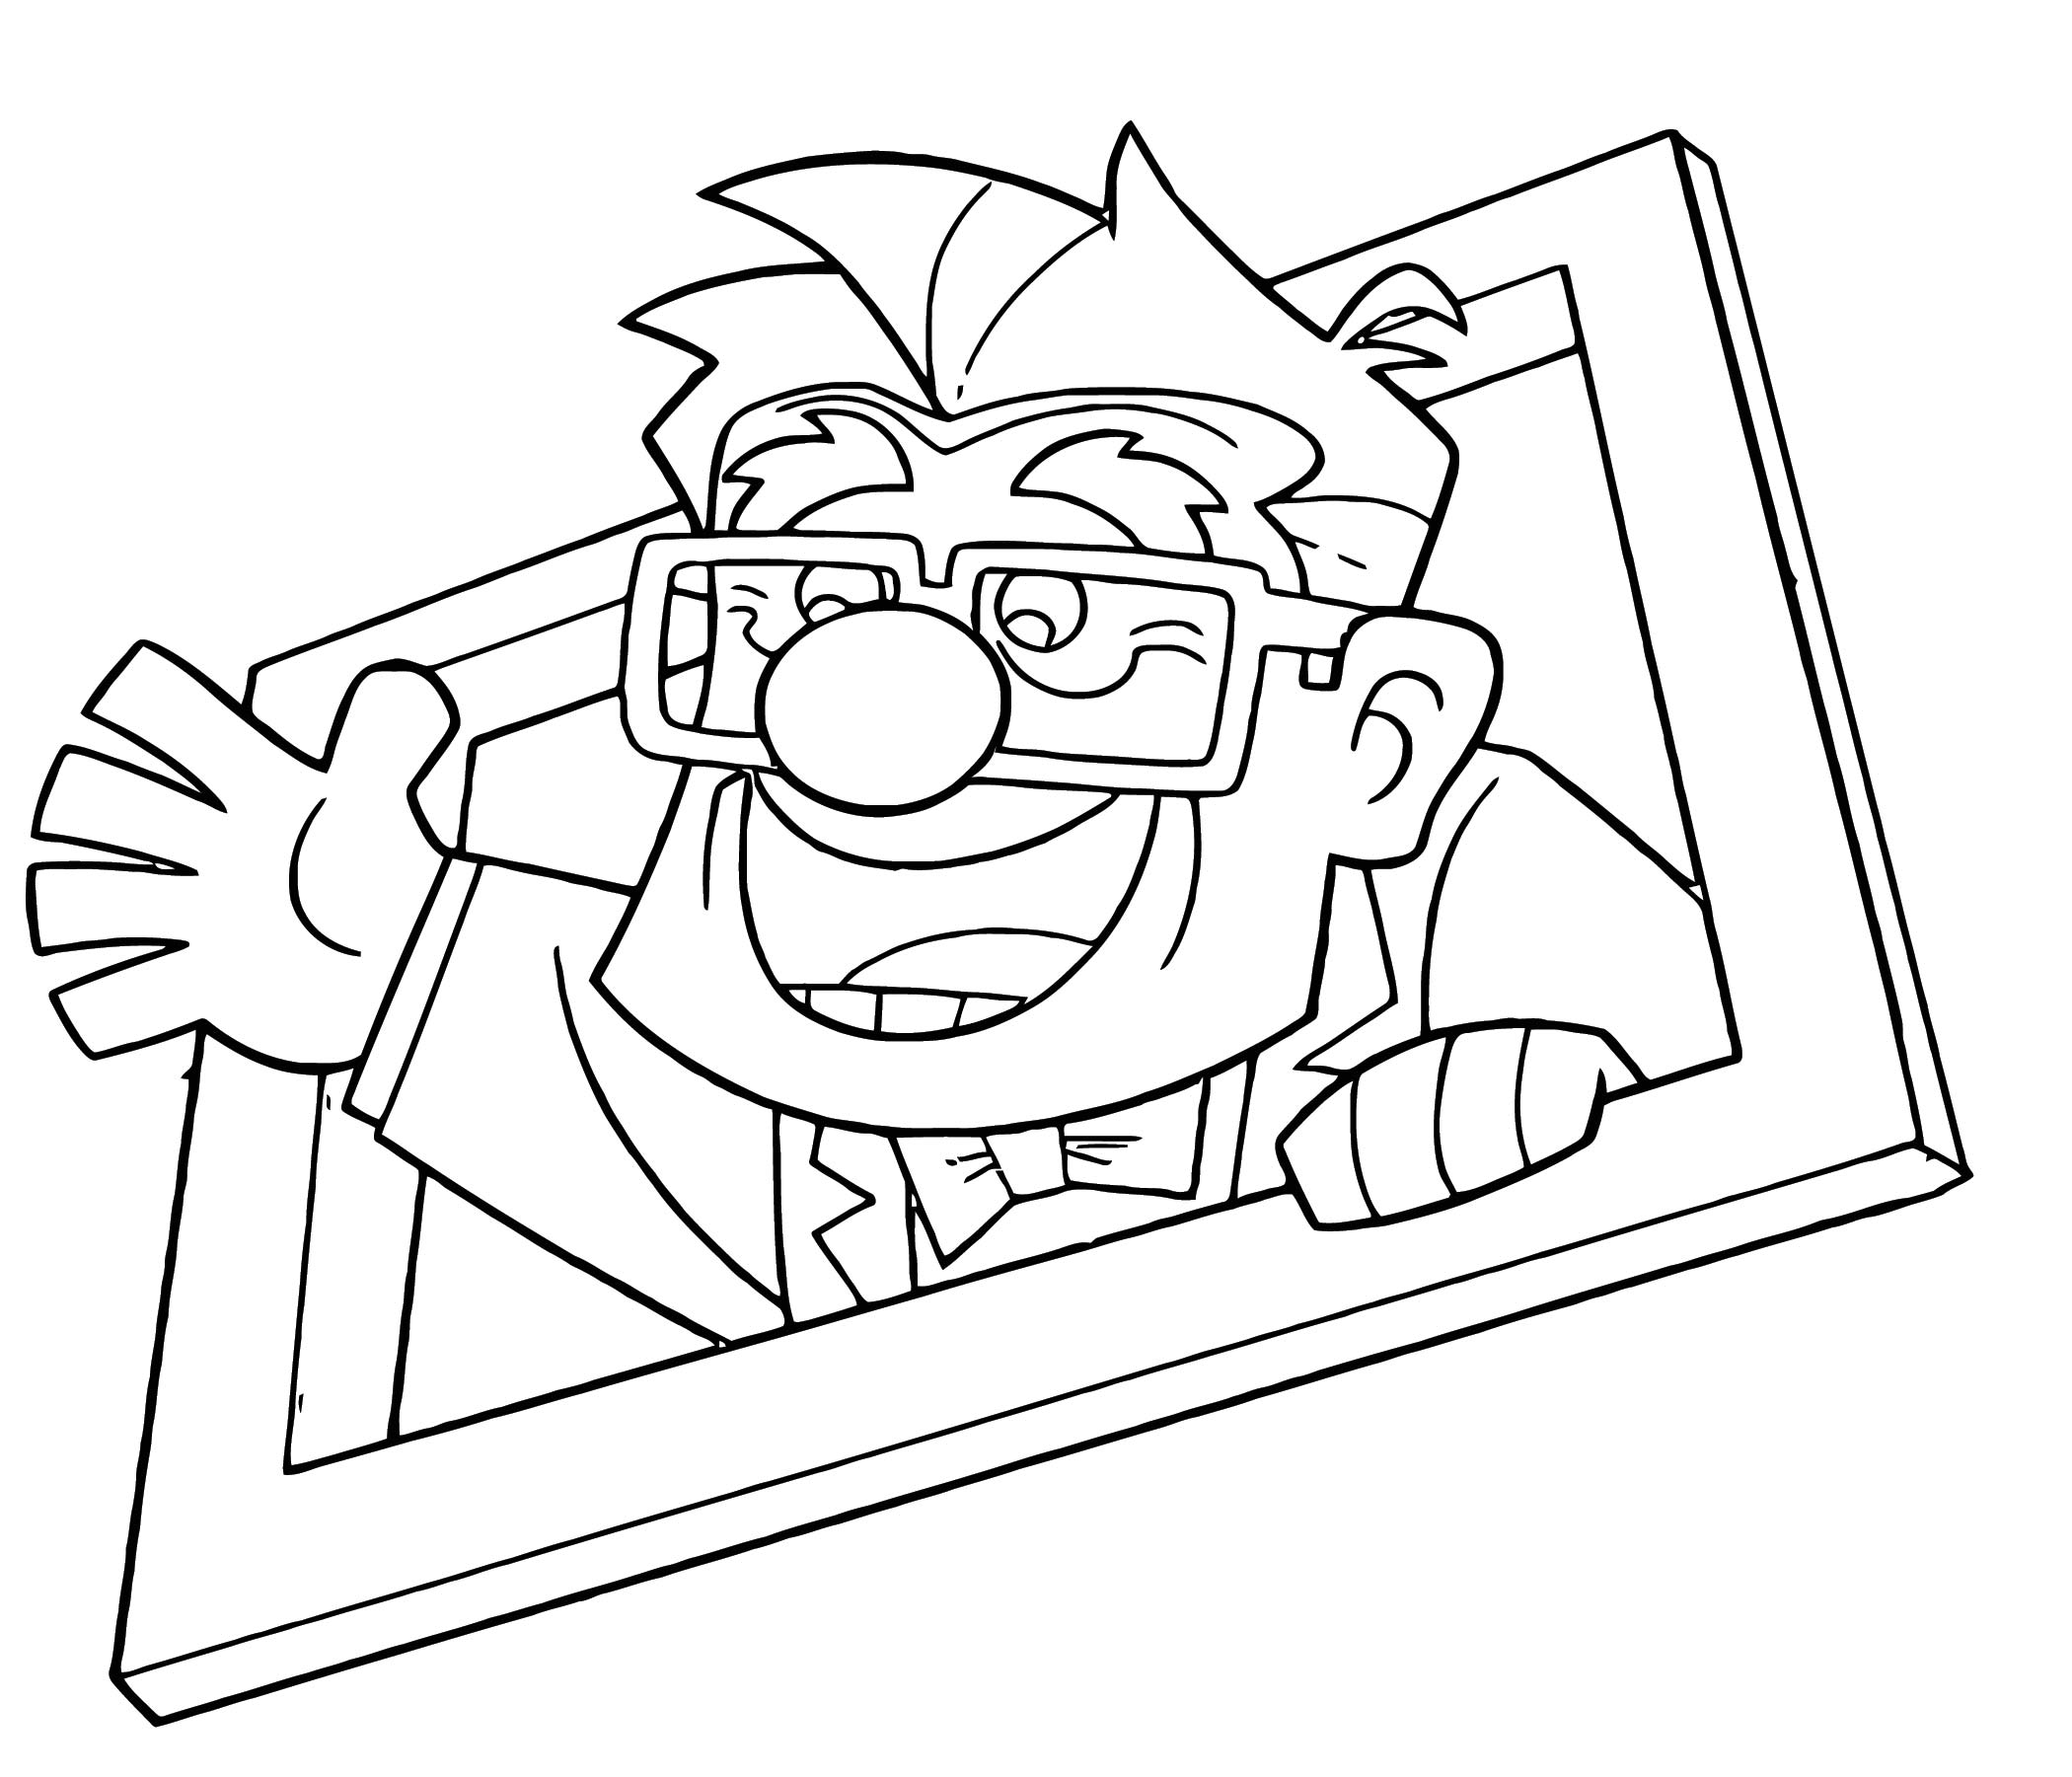 Disney Pixar Up Coloring Pages 10